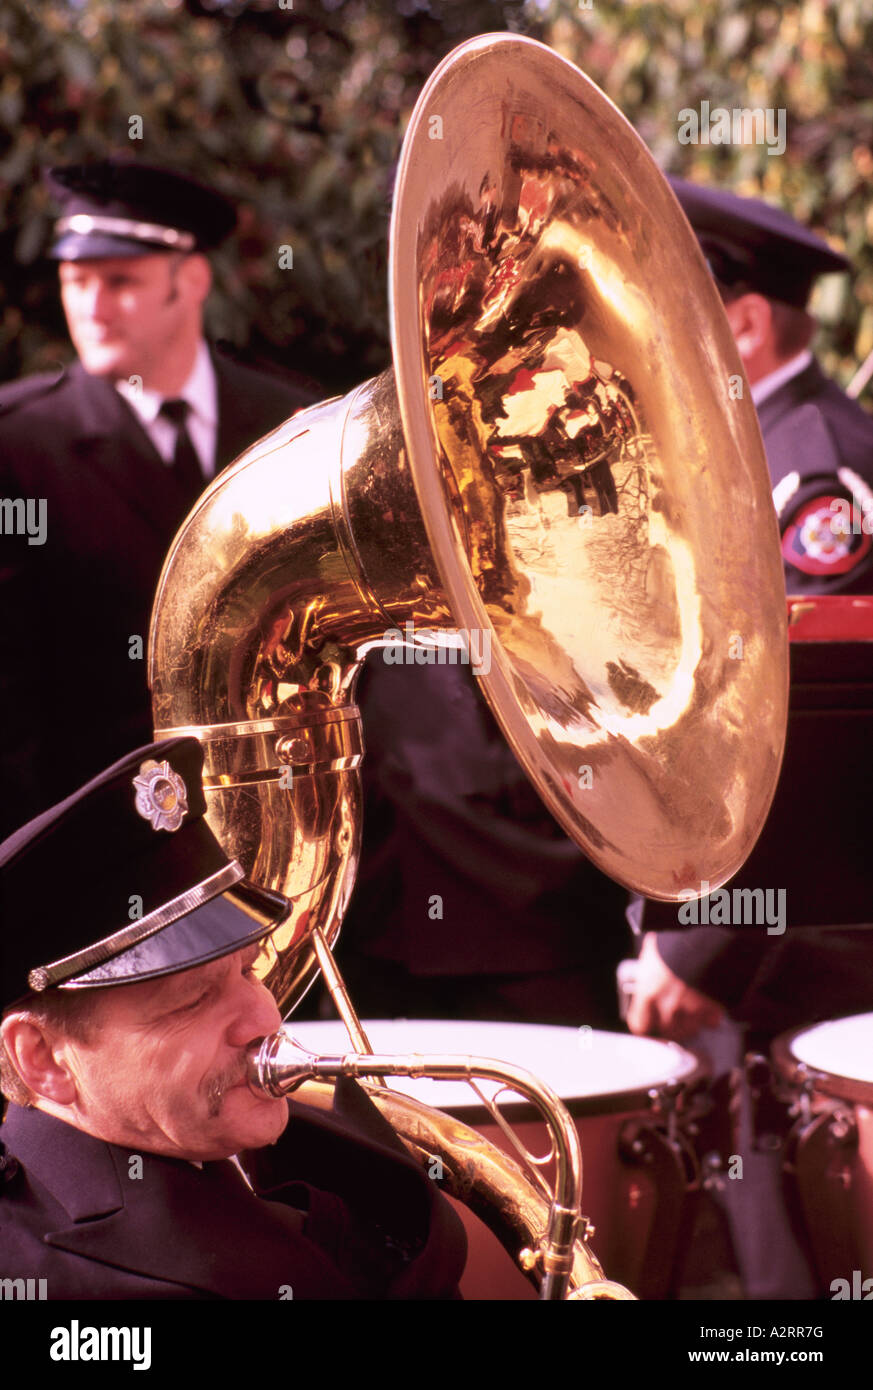 A Senior Man playing a Sousaphone or Tuba in a Band Stock Photo